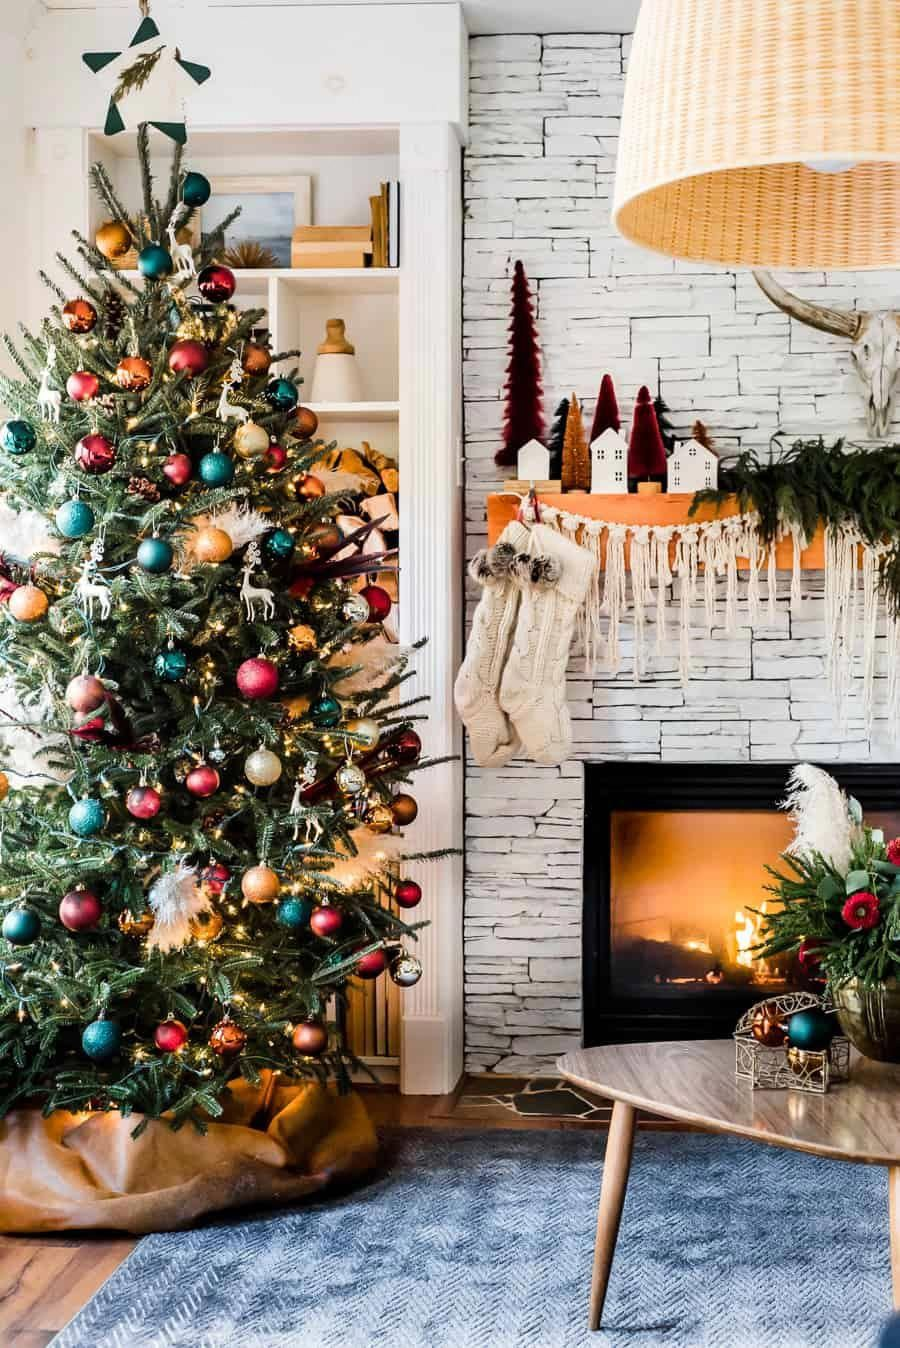 What a beautiful boho Christmas home decor. #bohochristmas #christmasdecor #bohemianchristmas #christmashome